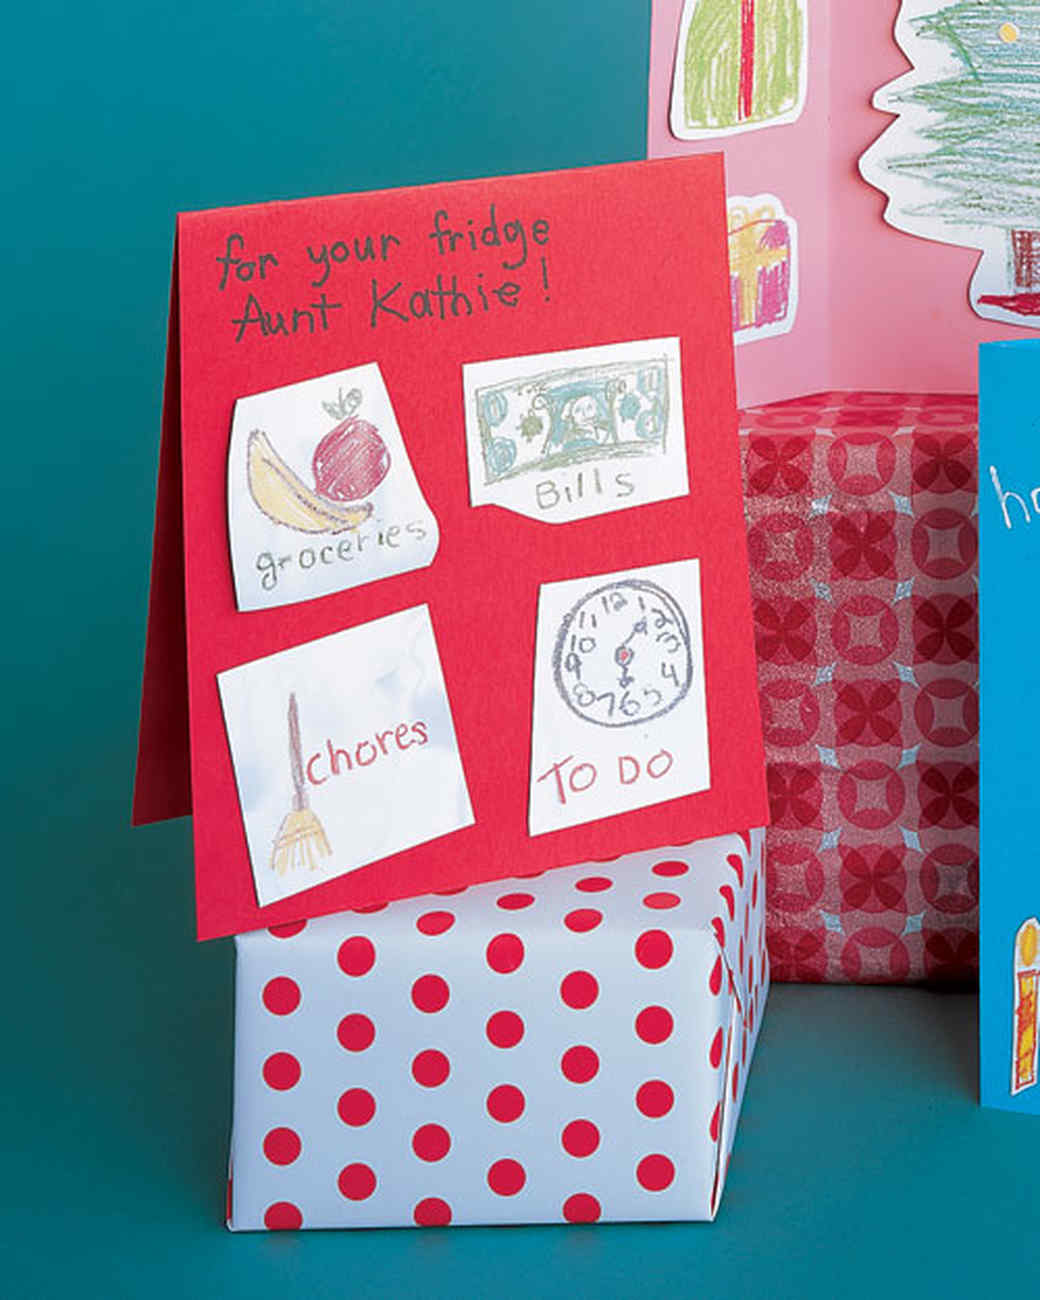 Wonderful And Teachers Stewart Gifts Kids Can Make Parents From Students Gifts Kids Can Make And Gift Ideas Parents From Toddlers Gift Ideas gifts Christmas Gift Ideas For Parents